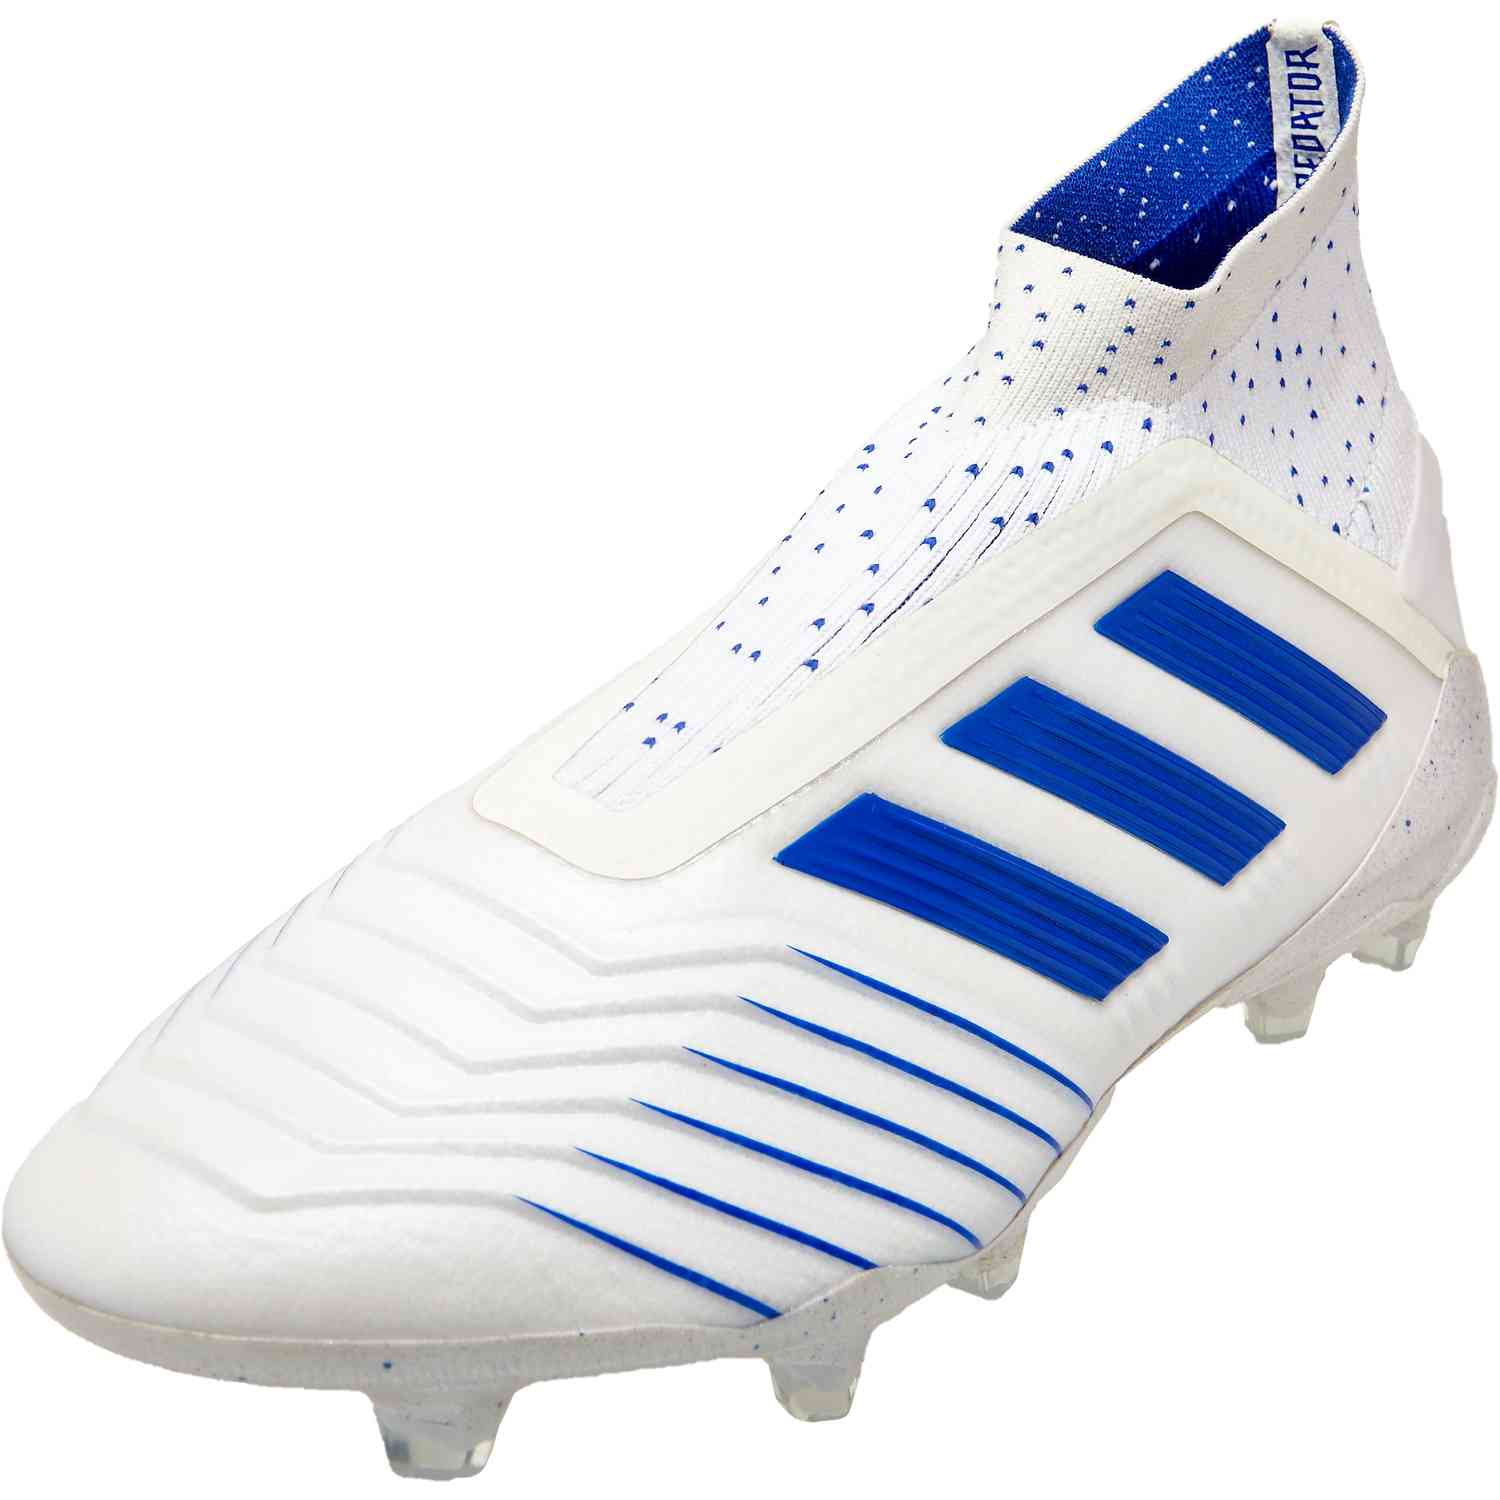 outlet on sale reputable site brand new adidas Predator 19+ FG - Virtuso Pack